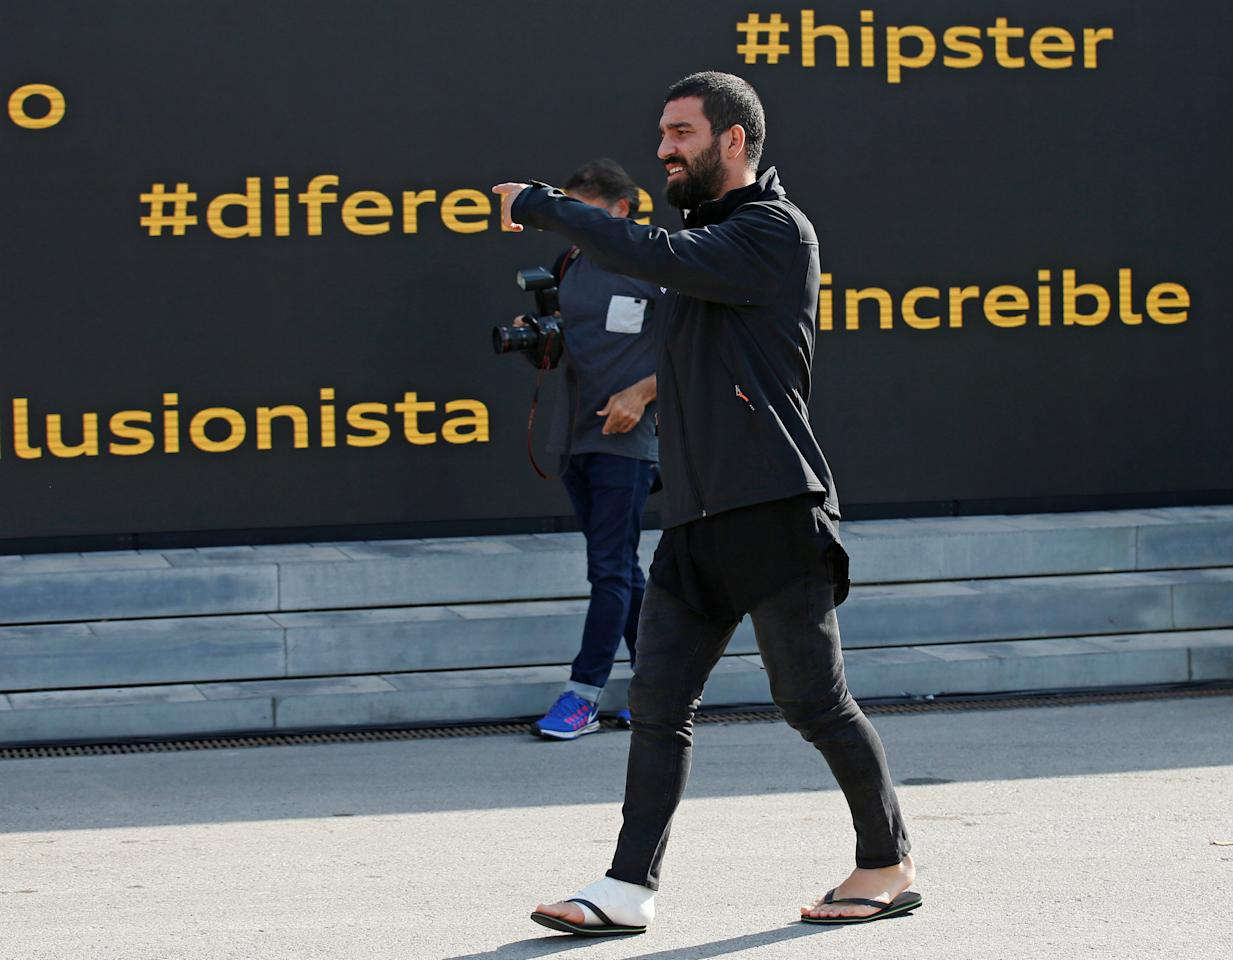 Barcelona's injured soccer player Arda Turan takes part in a commercial event near Camp Nou stadium in Barcelona, Spain October 27, 2016. REUTERS/Albert Gea